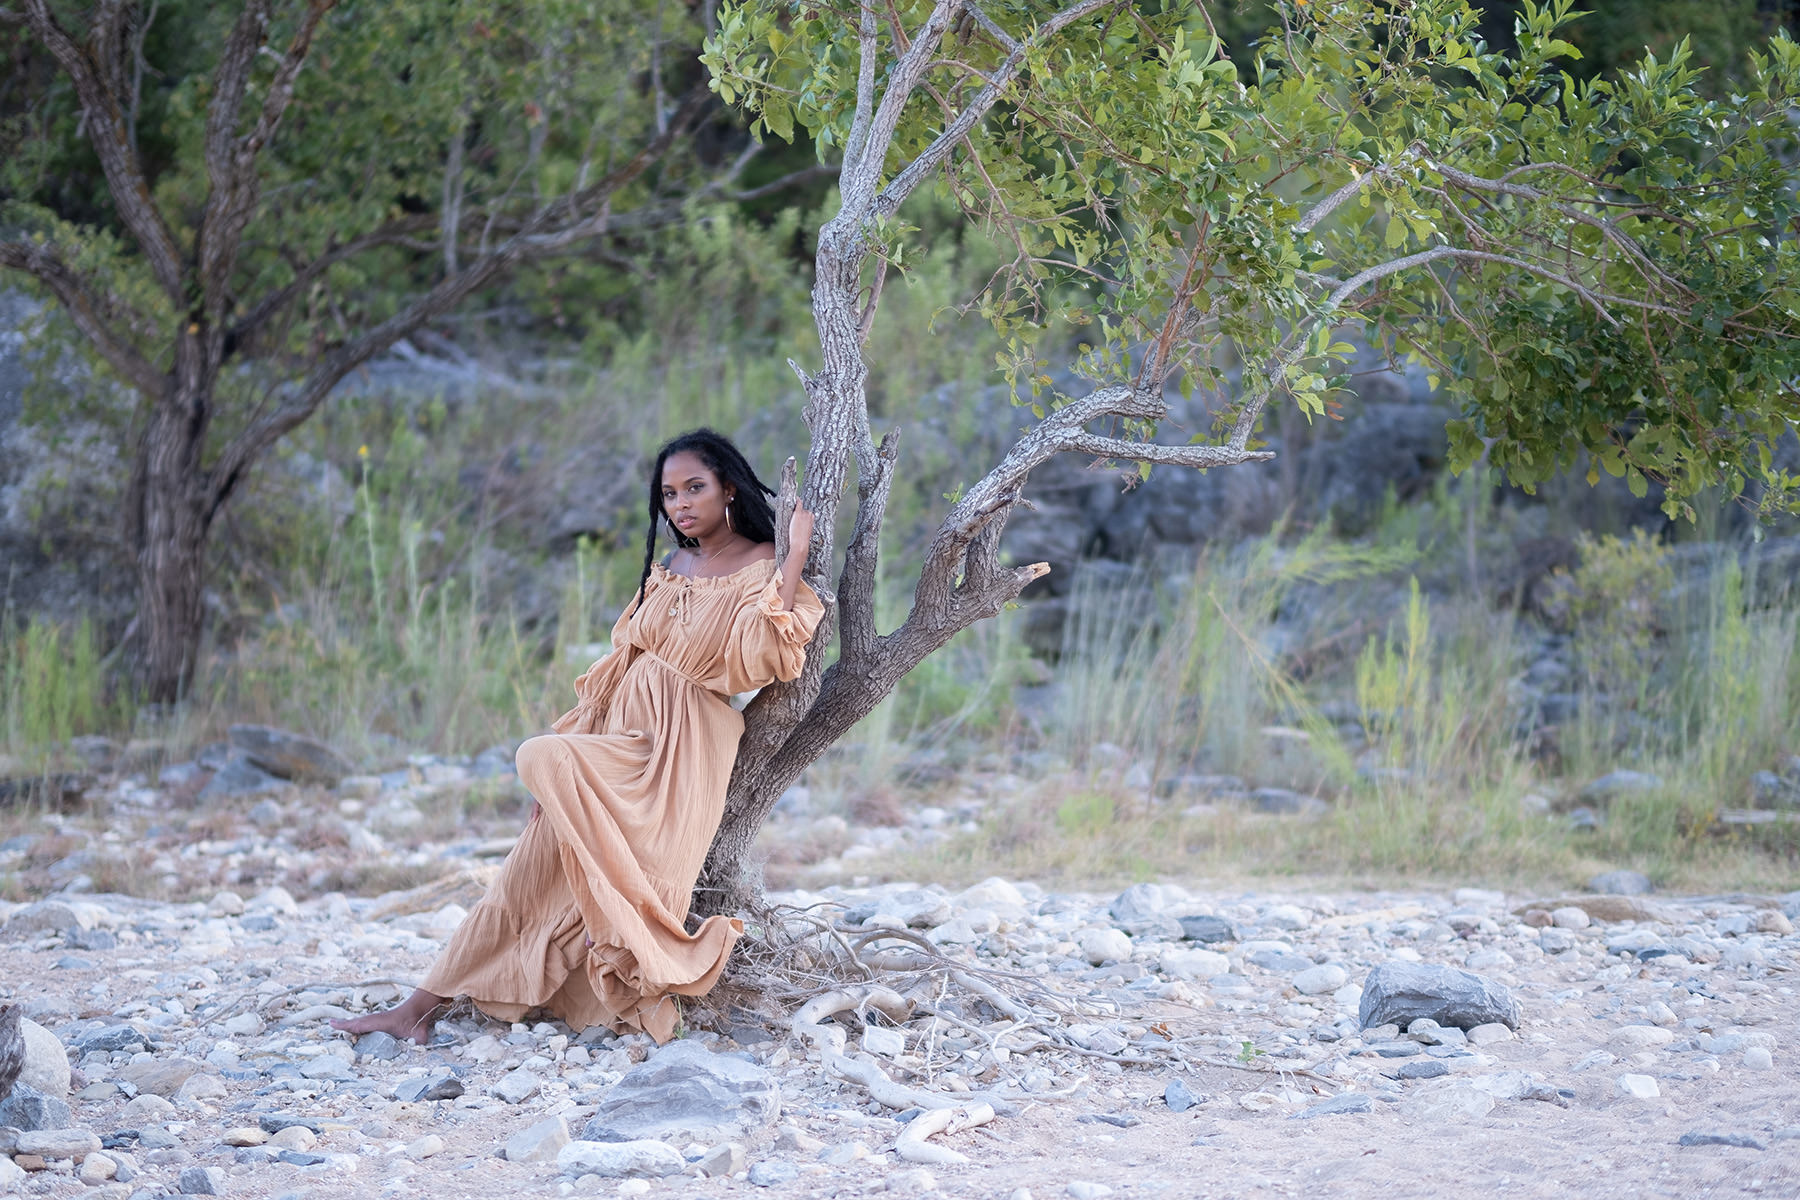 A woman is leaning against a tree.